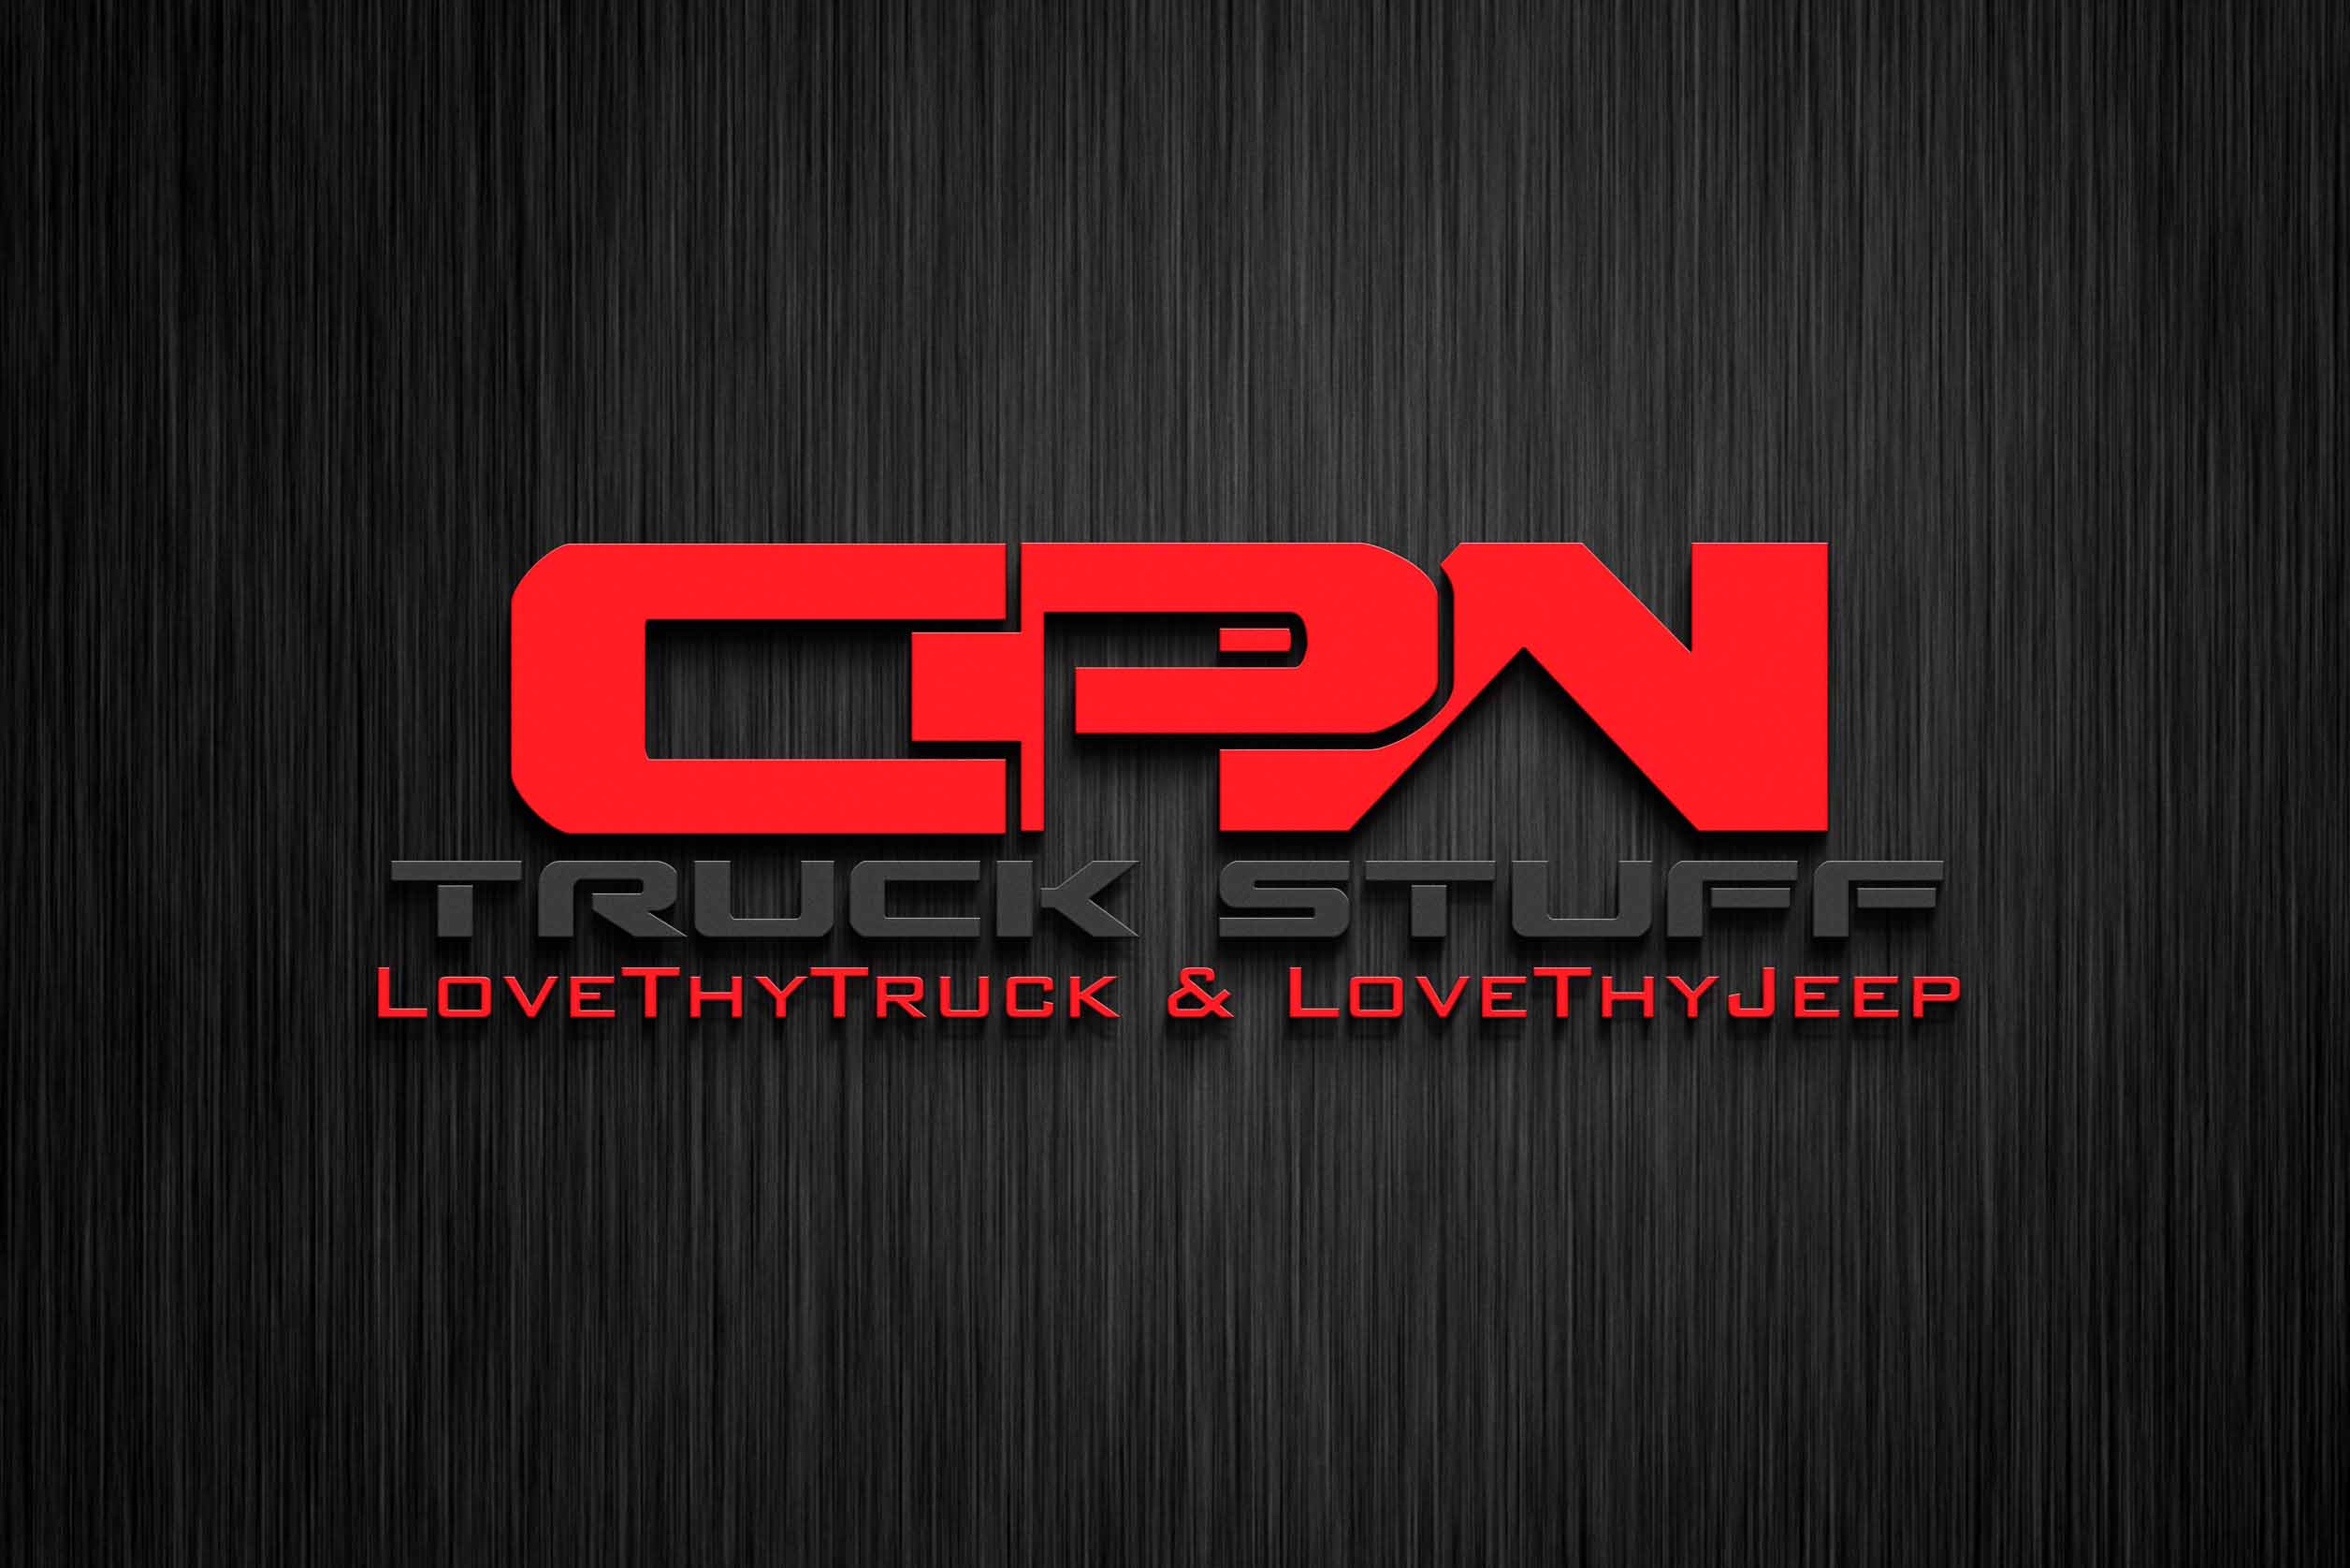 CPW Truck Stuff & Wheels reviews | Back Door - Tinley Park IL